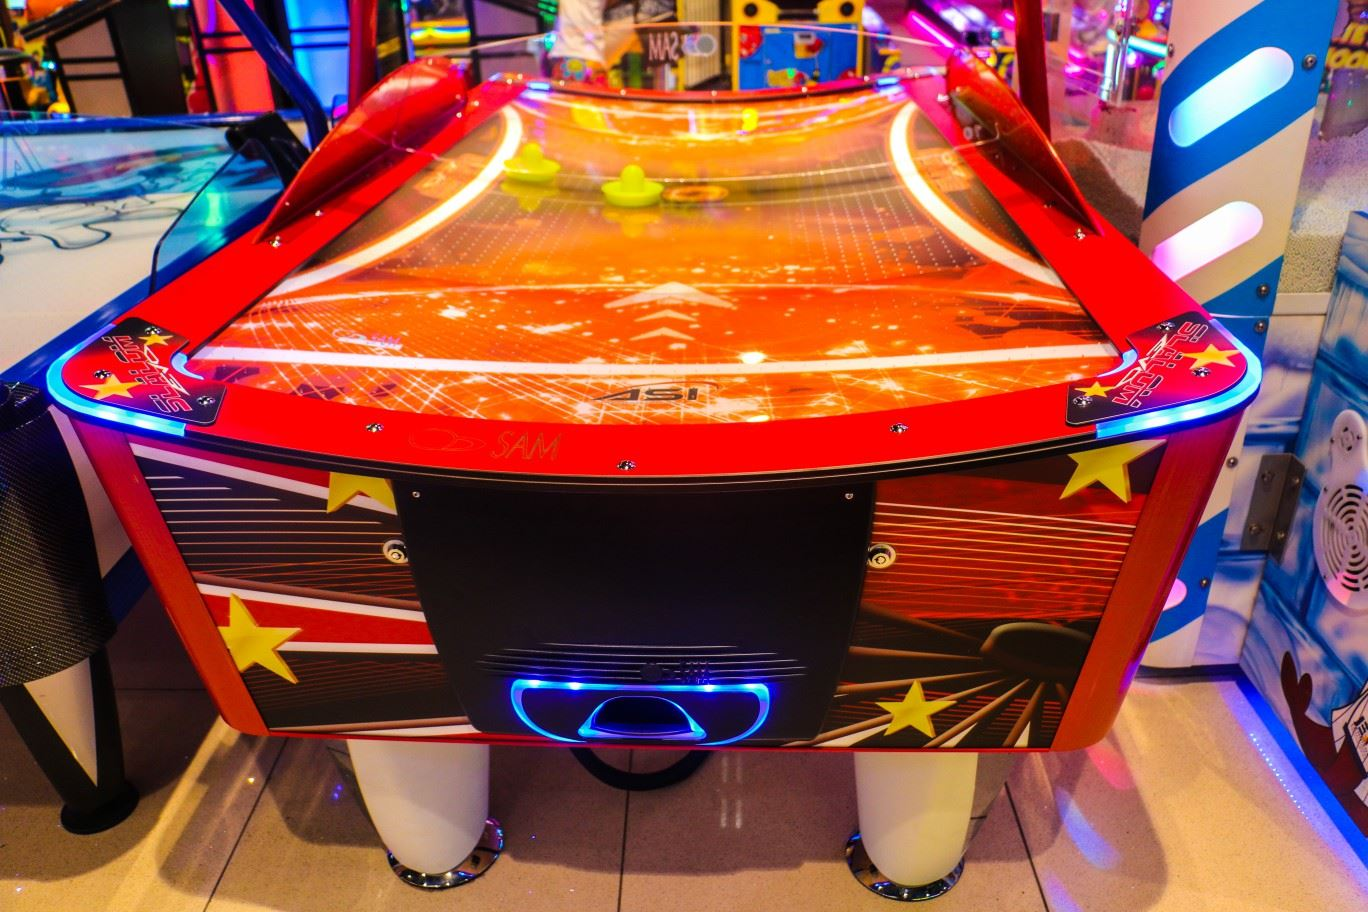 Slalom Air Hockey game at Magic Planet Mall of the Emirates